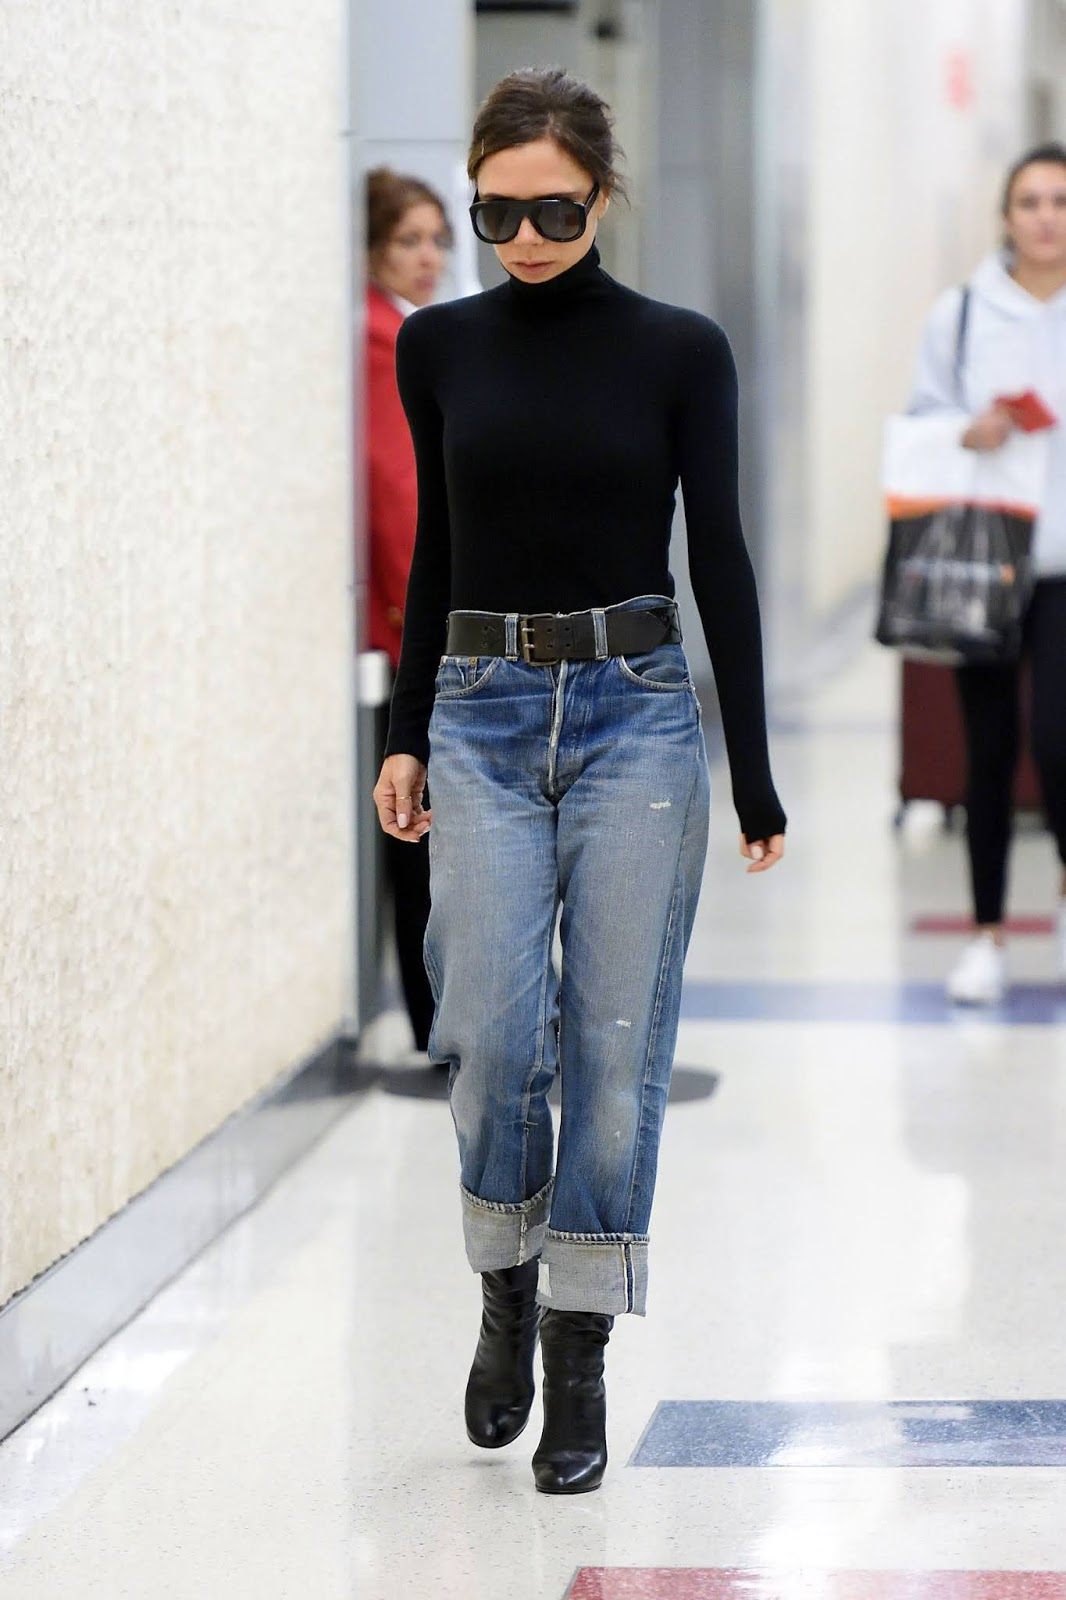 Inspiring Winter Outfit From Victoria Beckham — Sunglasses, Turtleneck Sweater, Belted Boyfriend Jeans, and Ankle Boots